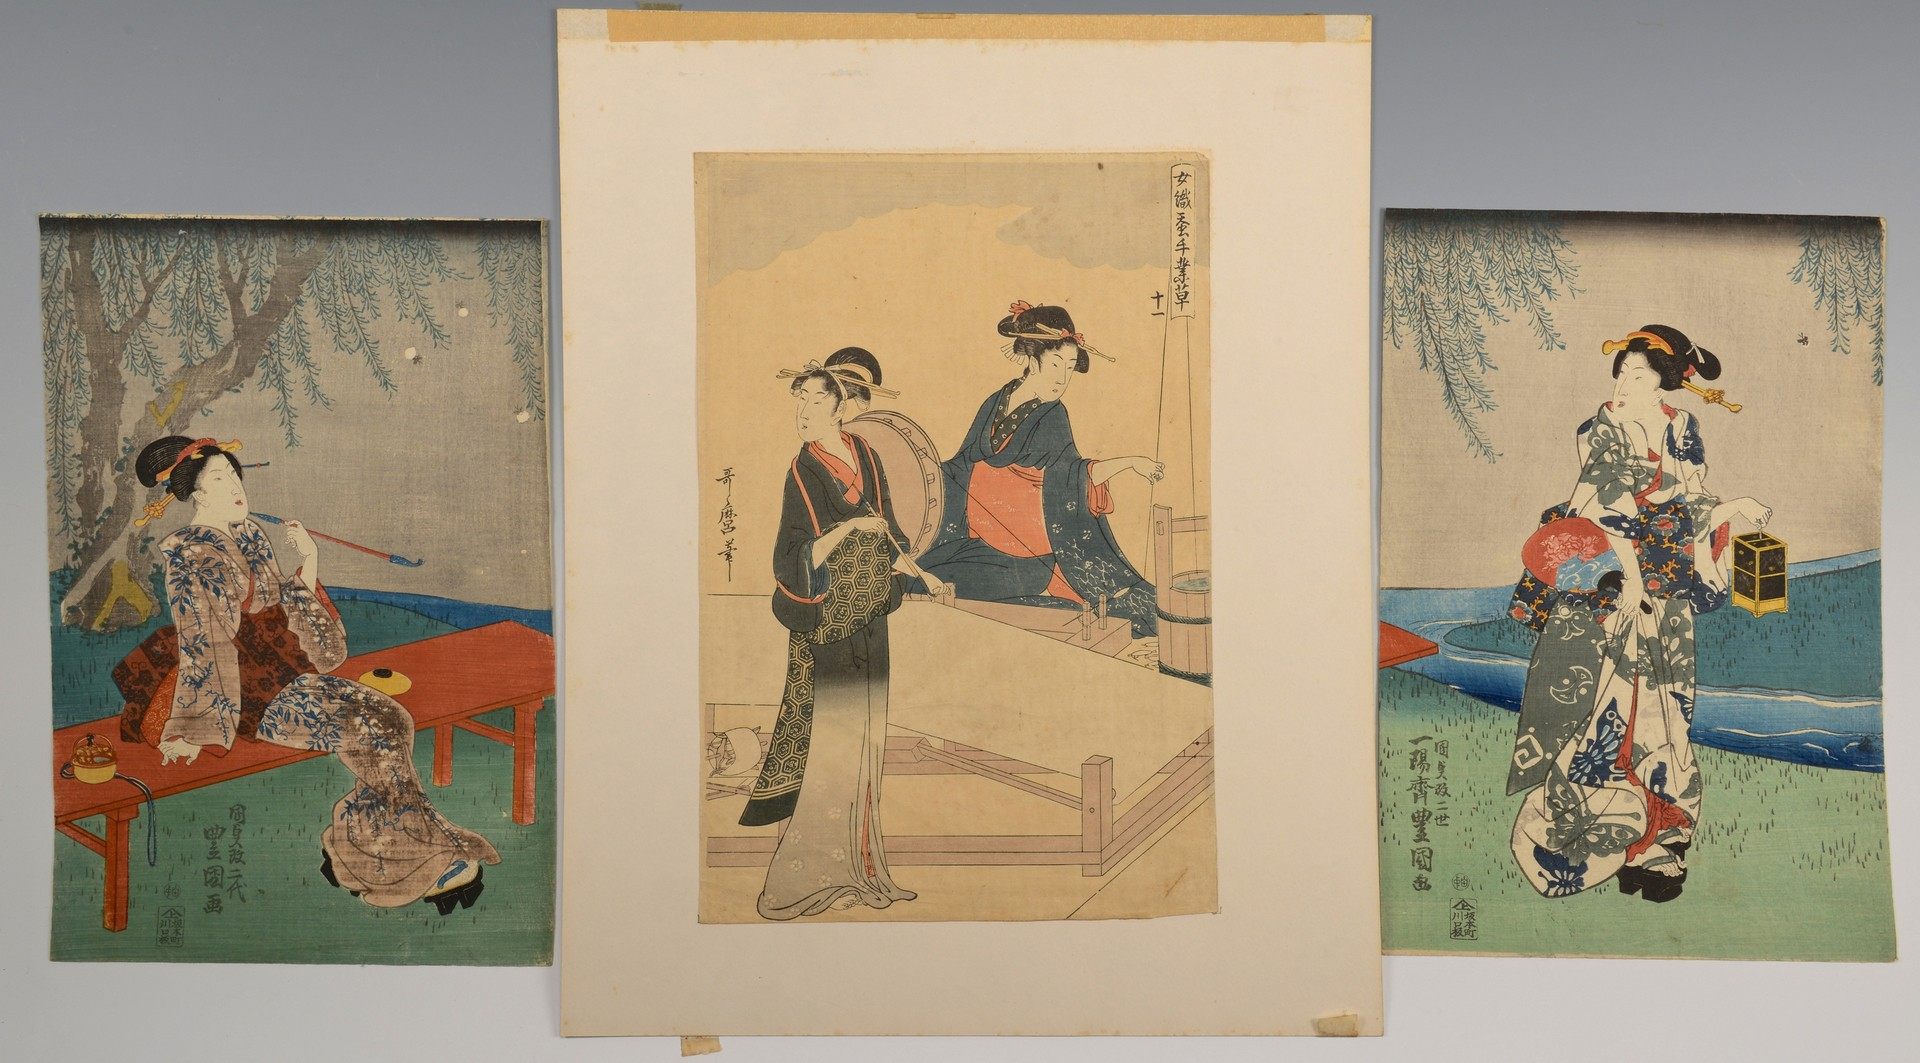 Lot 3594178: 3 Japanese Woodblock Prints